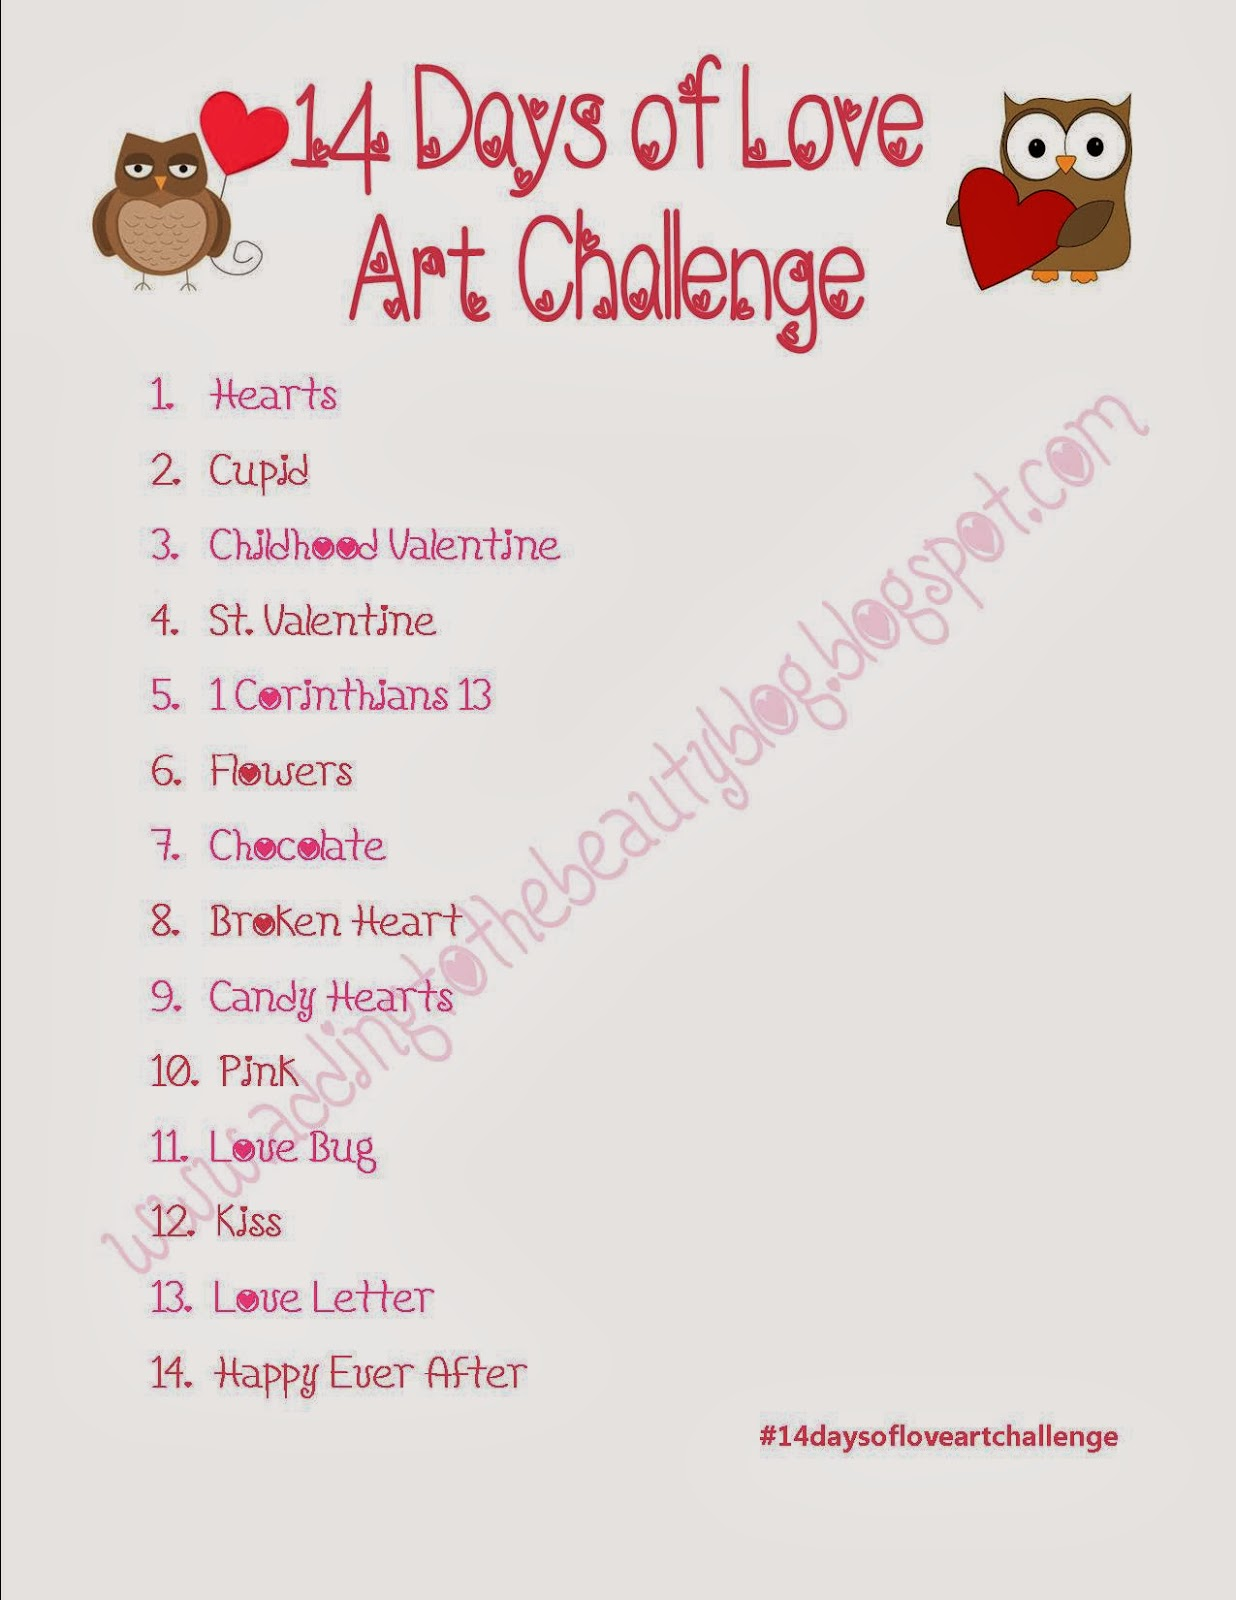 adding to the beauty: 14 Days of Love Art Challenge